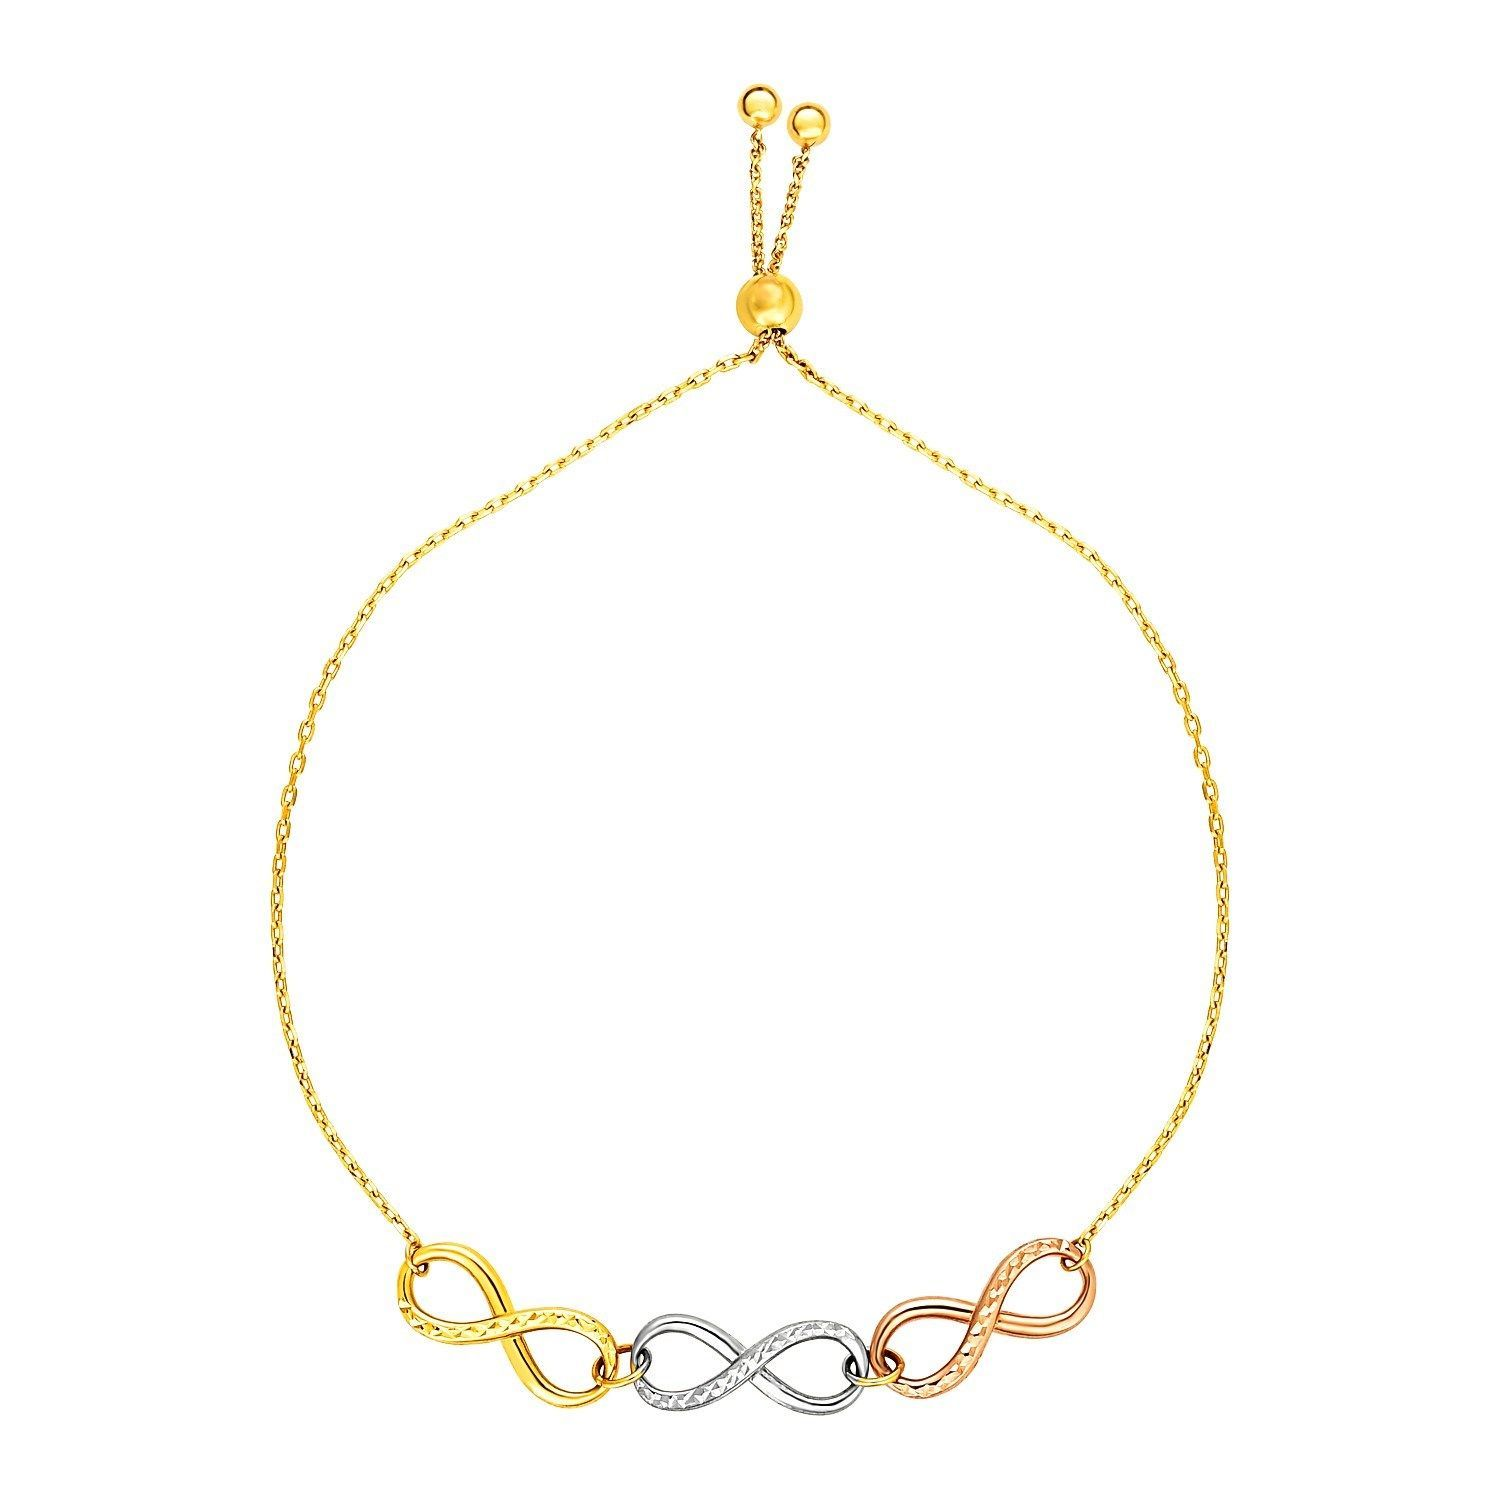 Adjustable Bracelet with Infinity Symbols in 14k Tri Color Gold Womens Girls